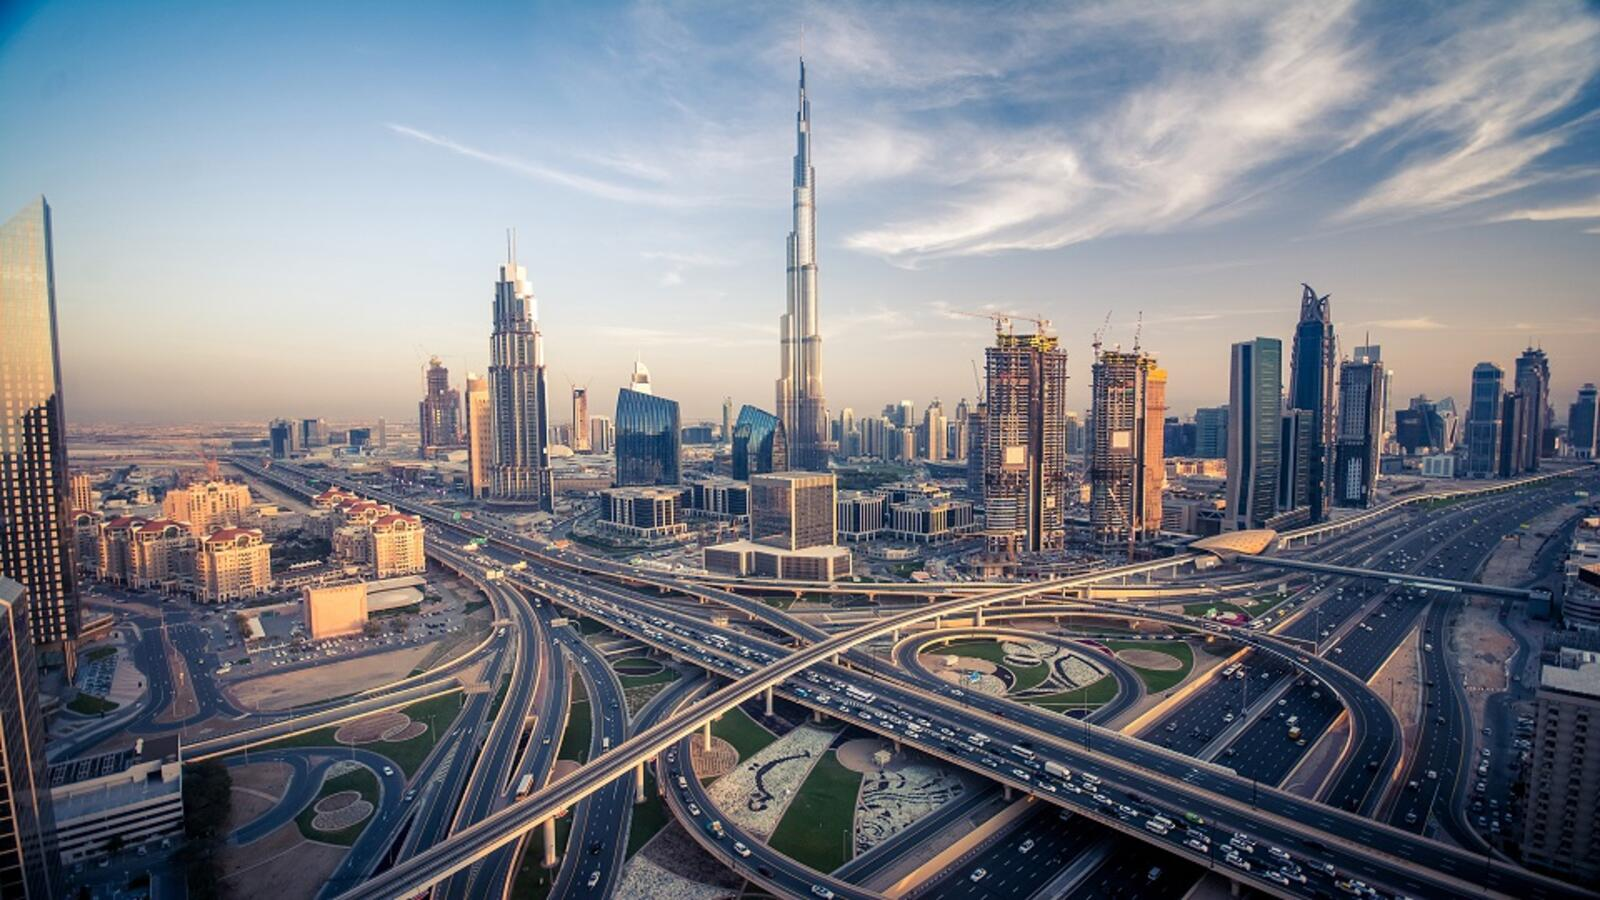 Dubai Civil Defence officer dies while trying to put out fire